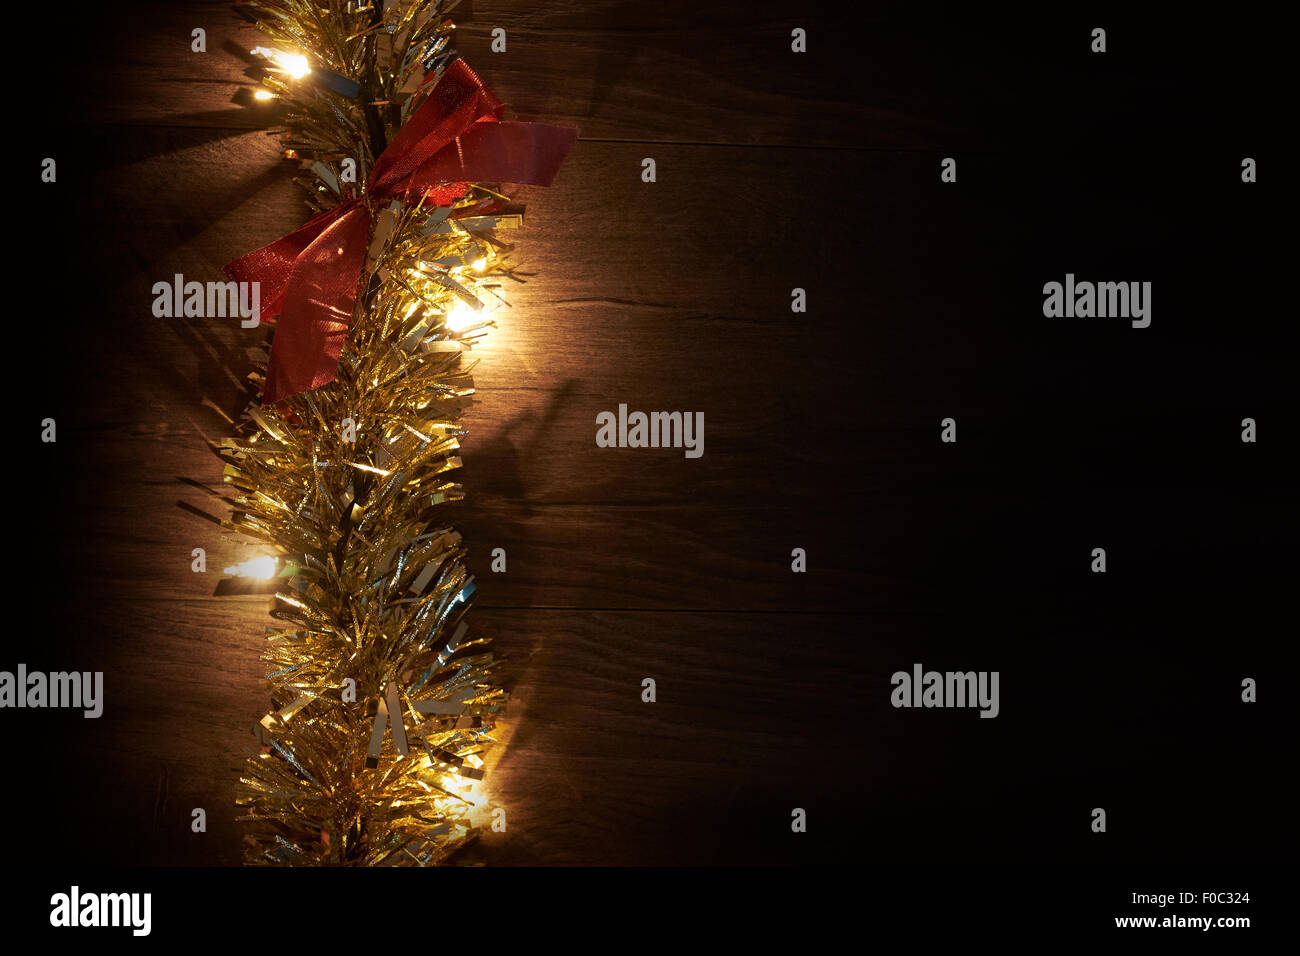 Traditional Christmas Tree lights, tinsel and ribbon lying on a wooden floor. - Stock Image